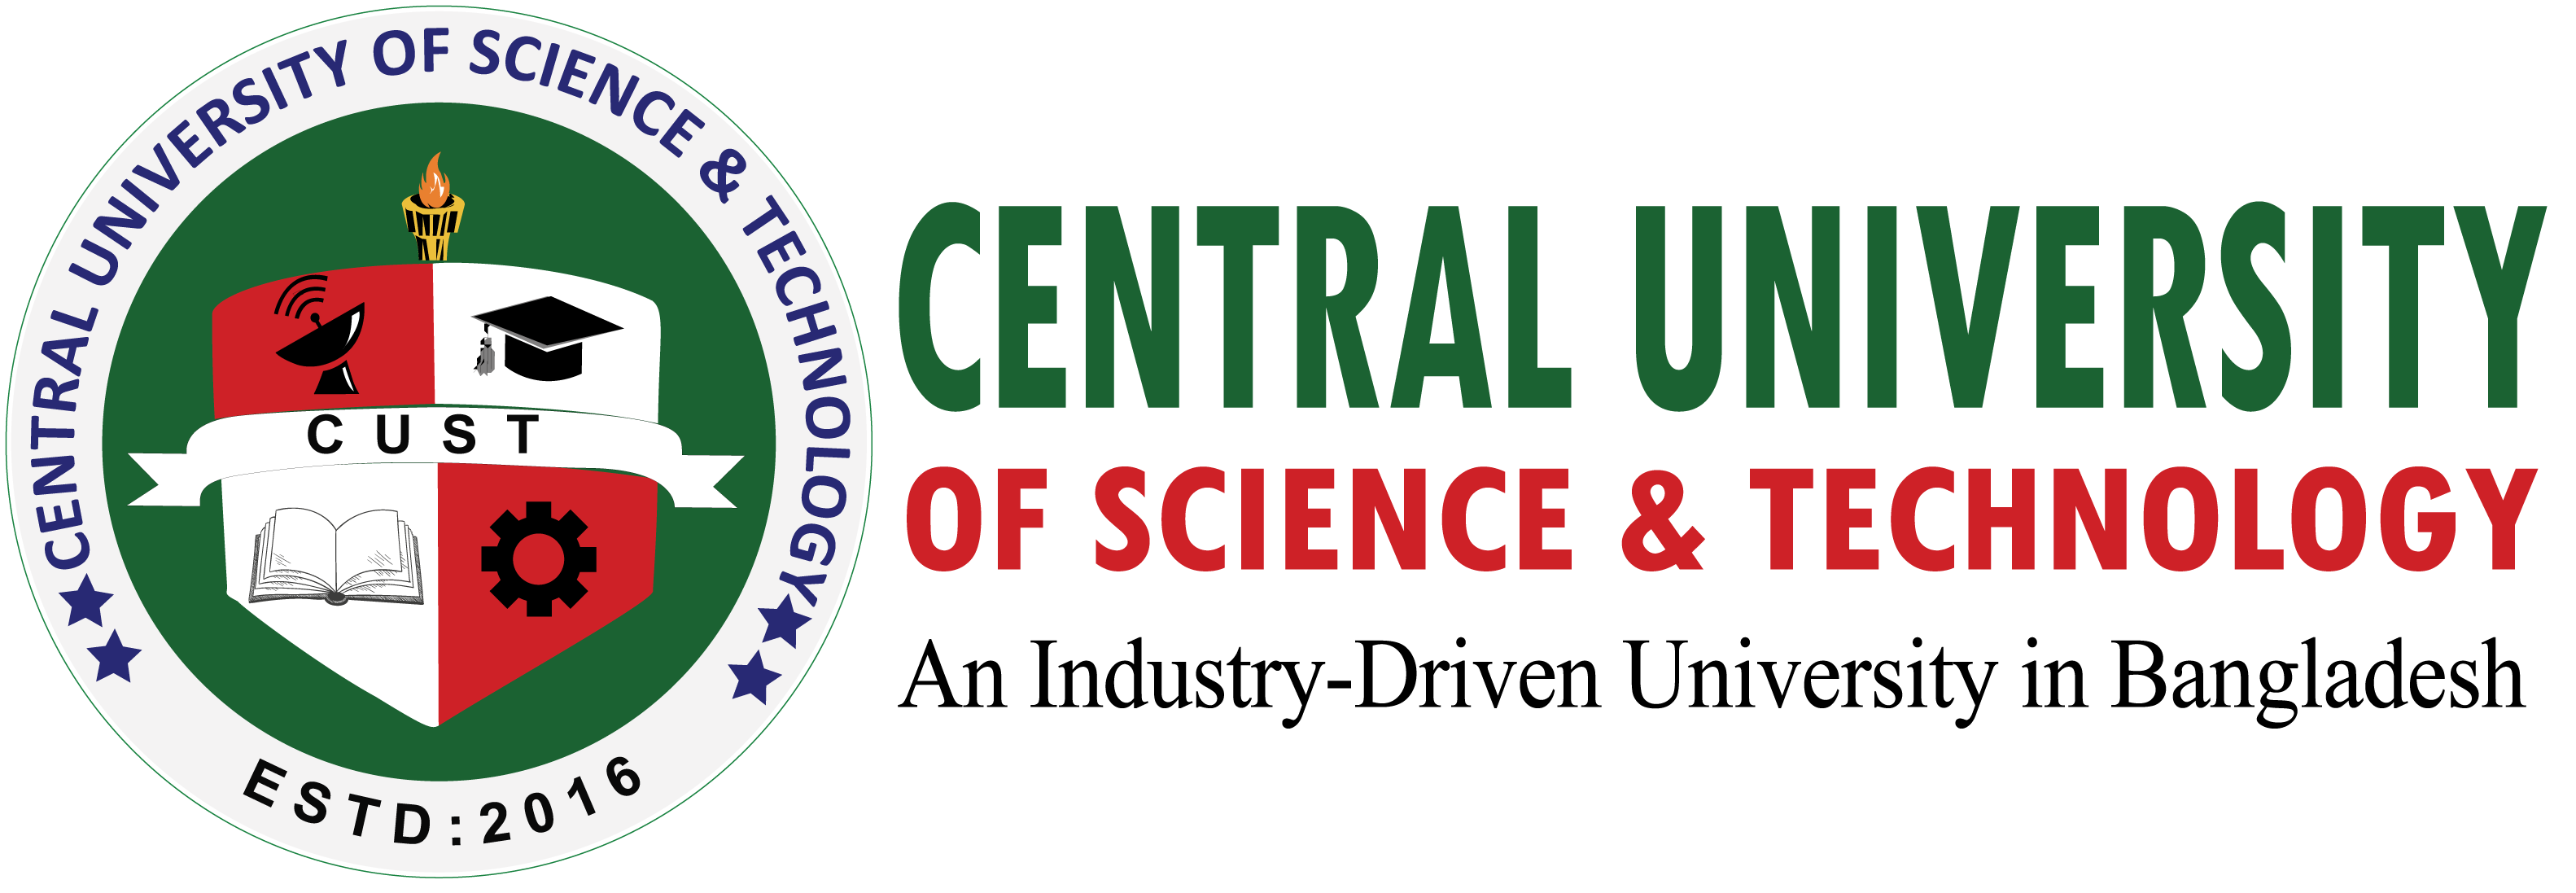 Tuition Fees - Central University of Science & Technology